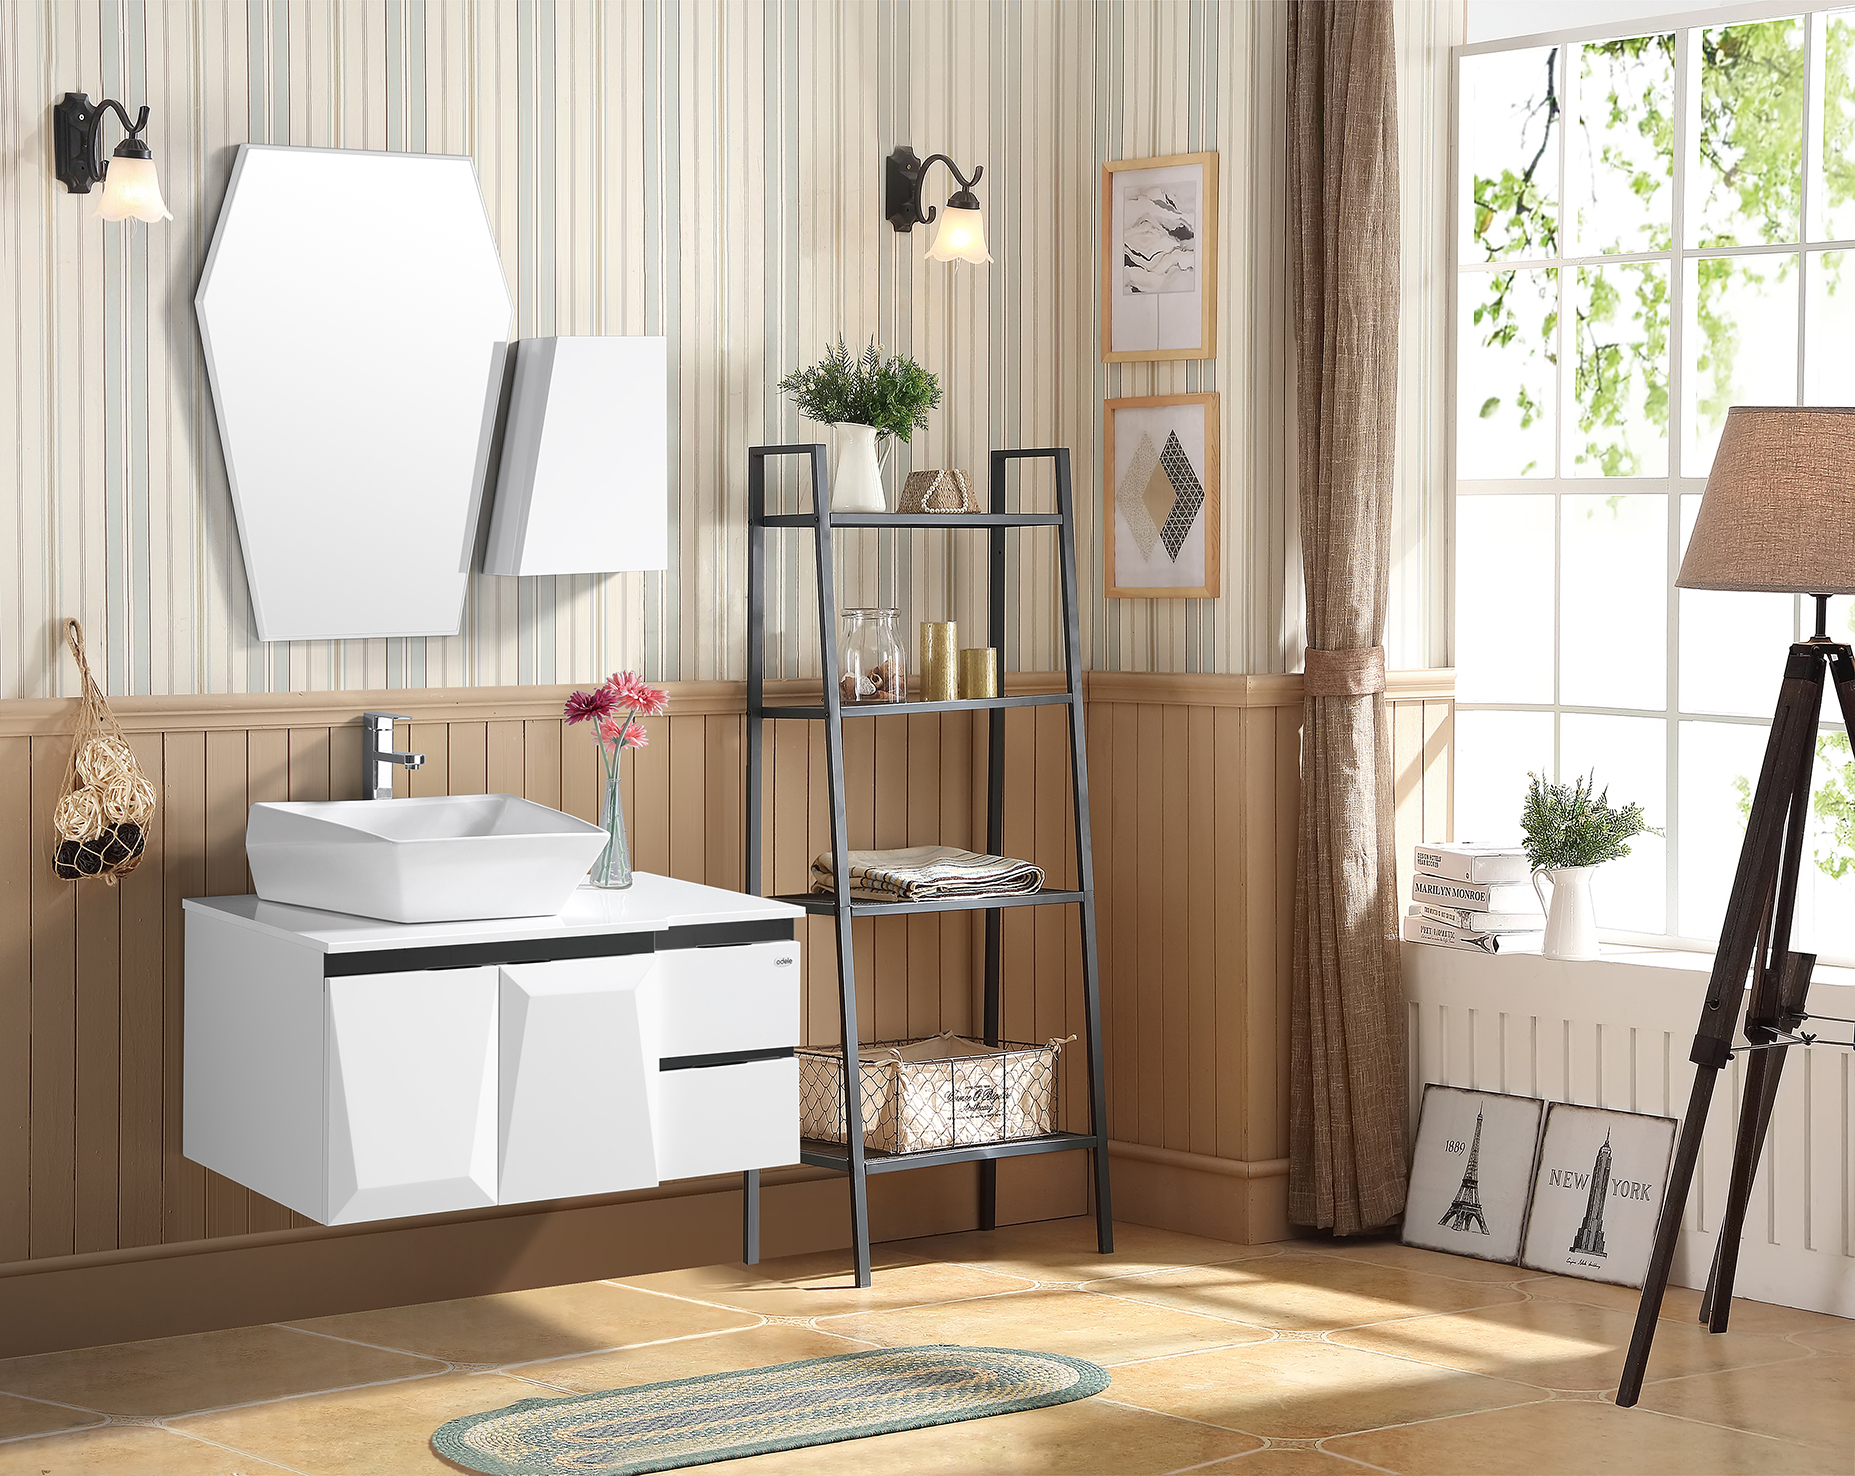 Fab Bath Vanity in White Colour by HomeTown